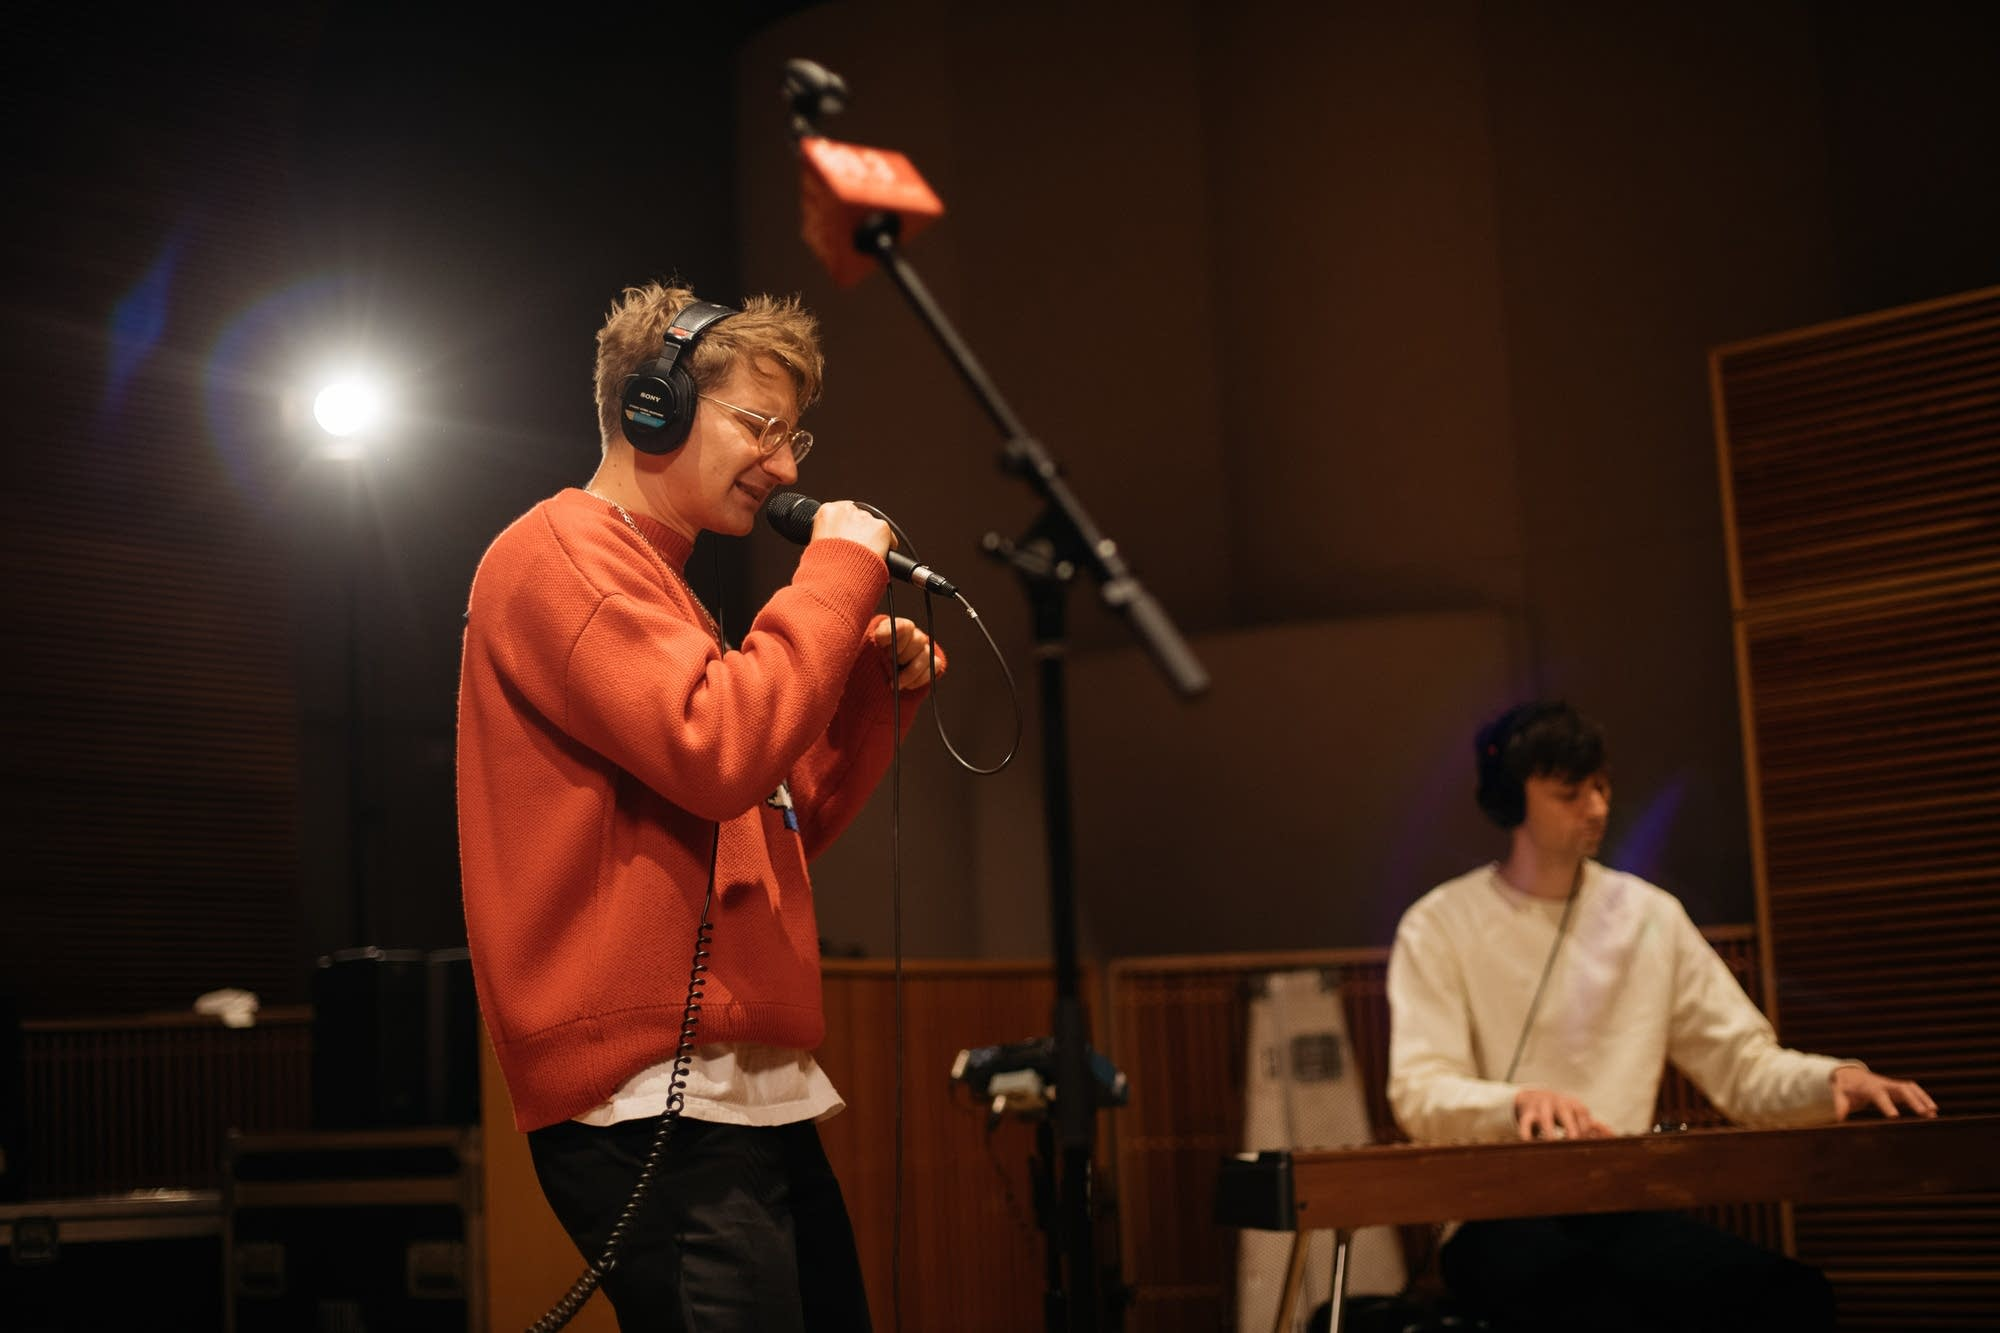 Glass Animals perform in The Current studio